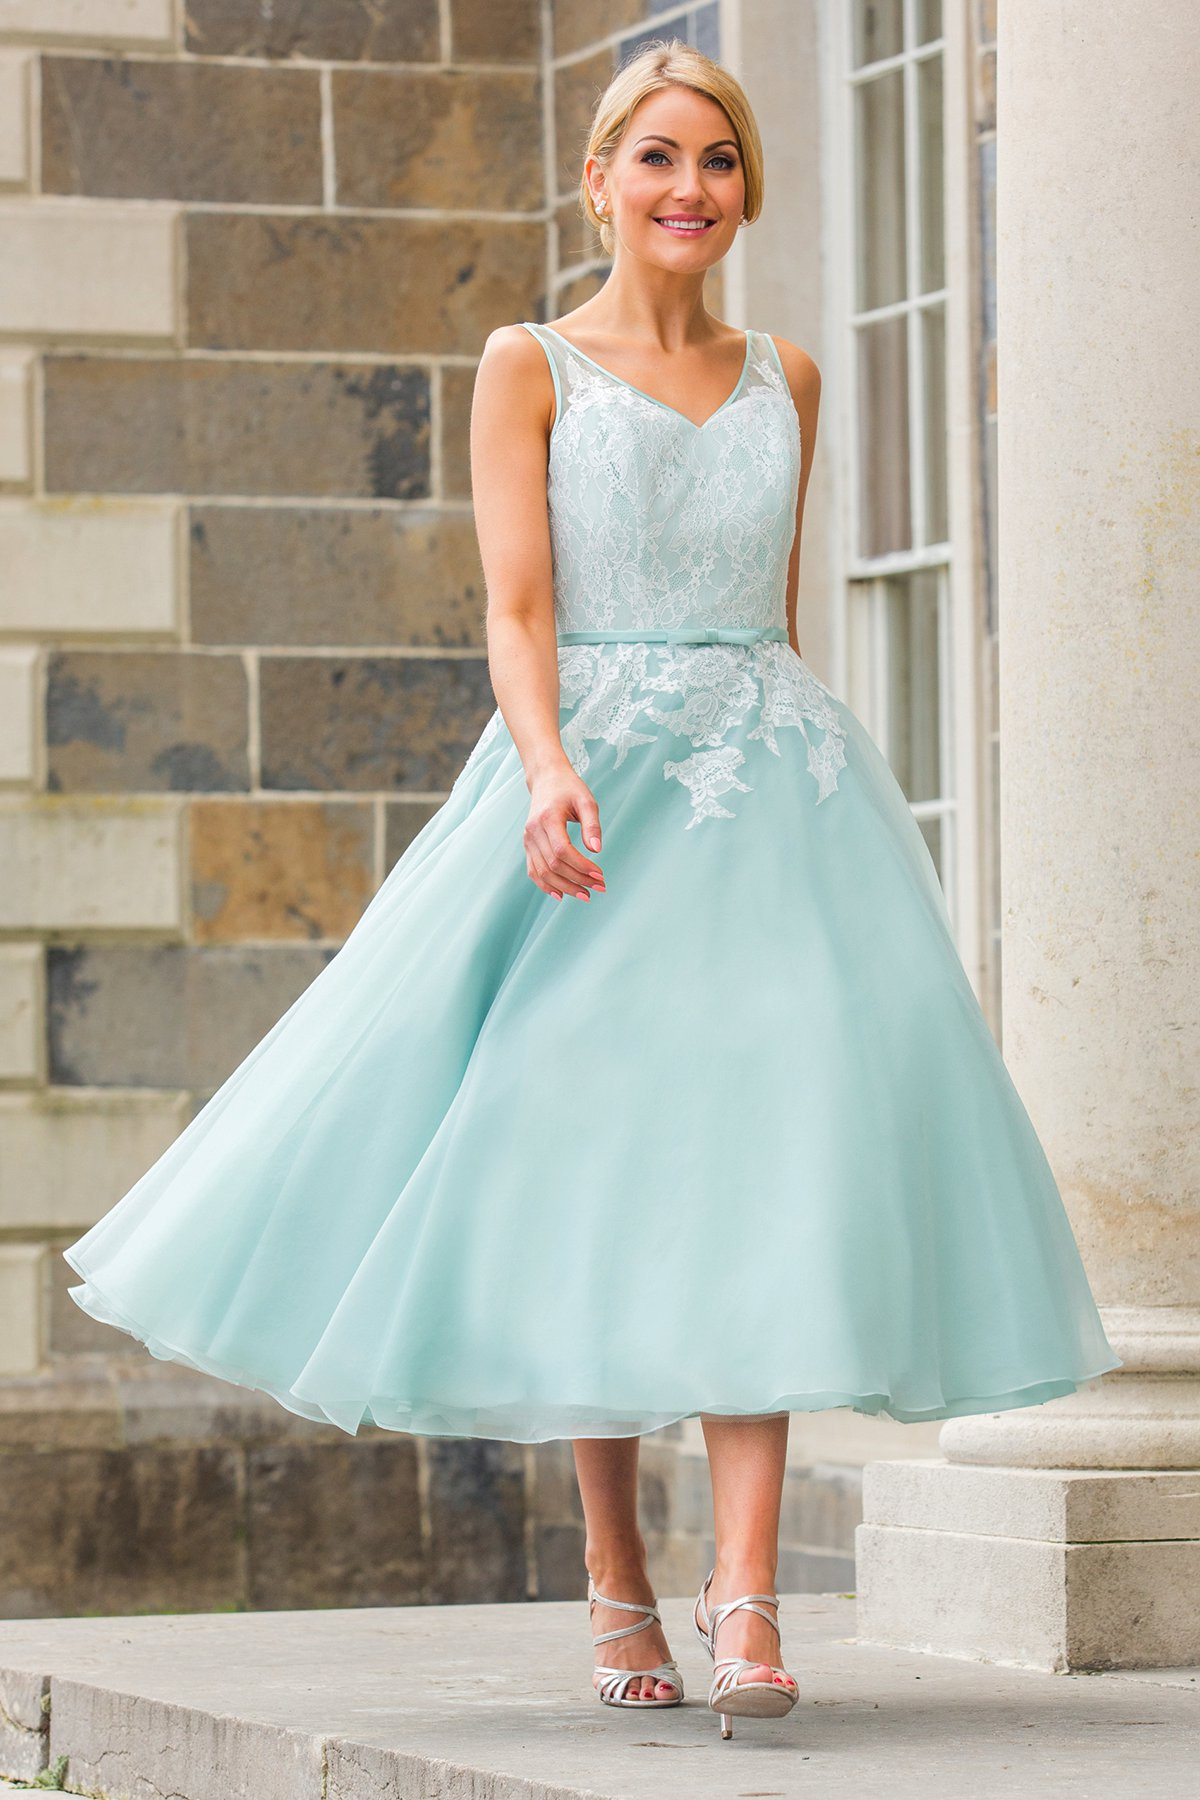 Style D17228 by Special Day Diamond Collection - Find Your Dream Dress